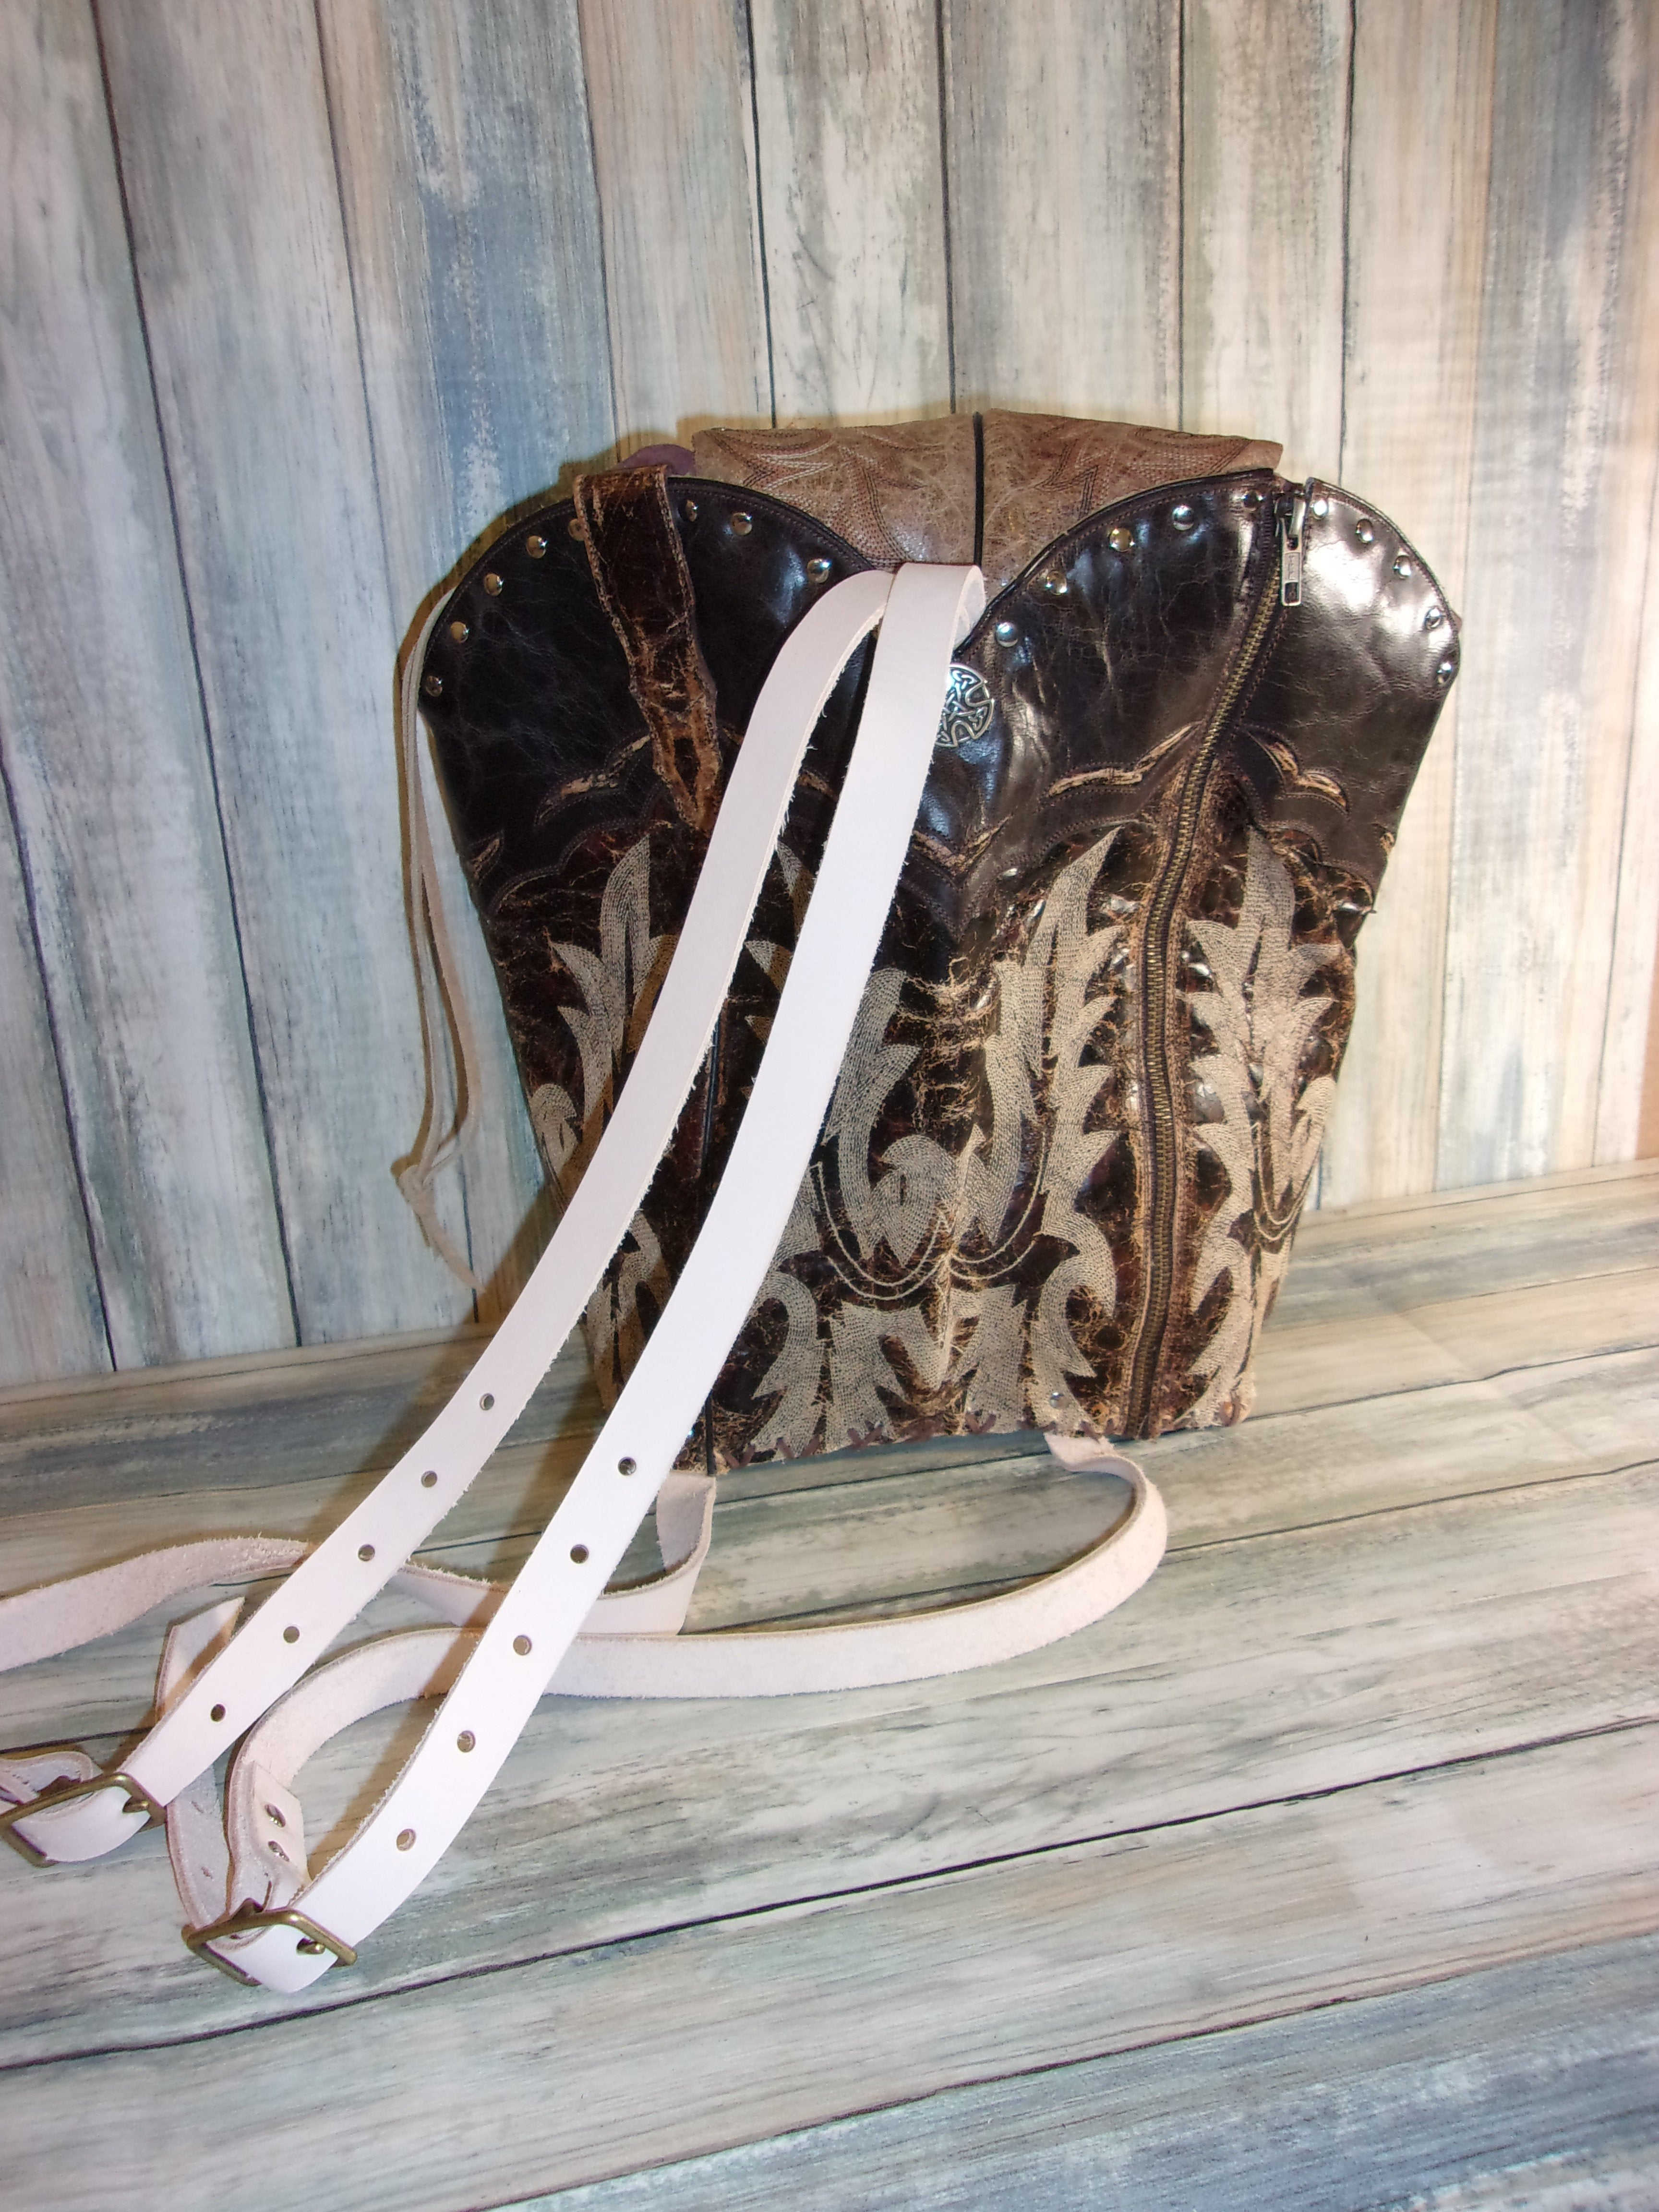 Brown and Tan Backpack - Western Backpack - Western Ruffsack - handcrafted handbags - cowboy boot purses - western purses - western handbags - western conceal carry purses - unique swing arm bags - Chris Thompson Bags